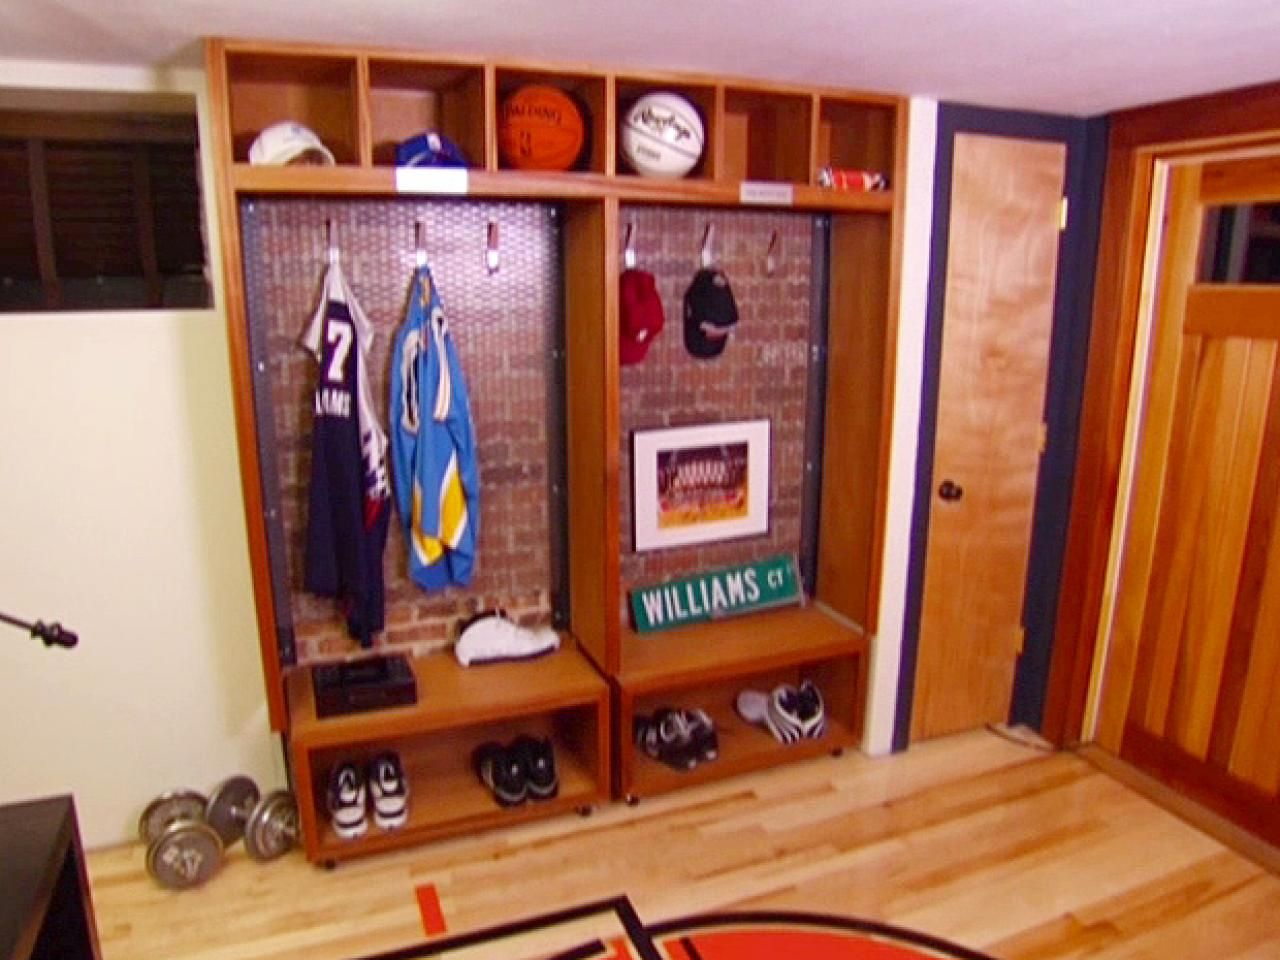 Boys basketball bedroom ideas - Locker Idea On Each Side Of Boys Windows For Shoes Hooks And Bballs